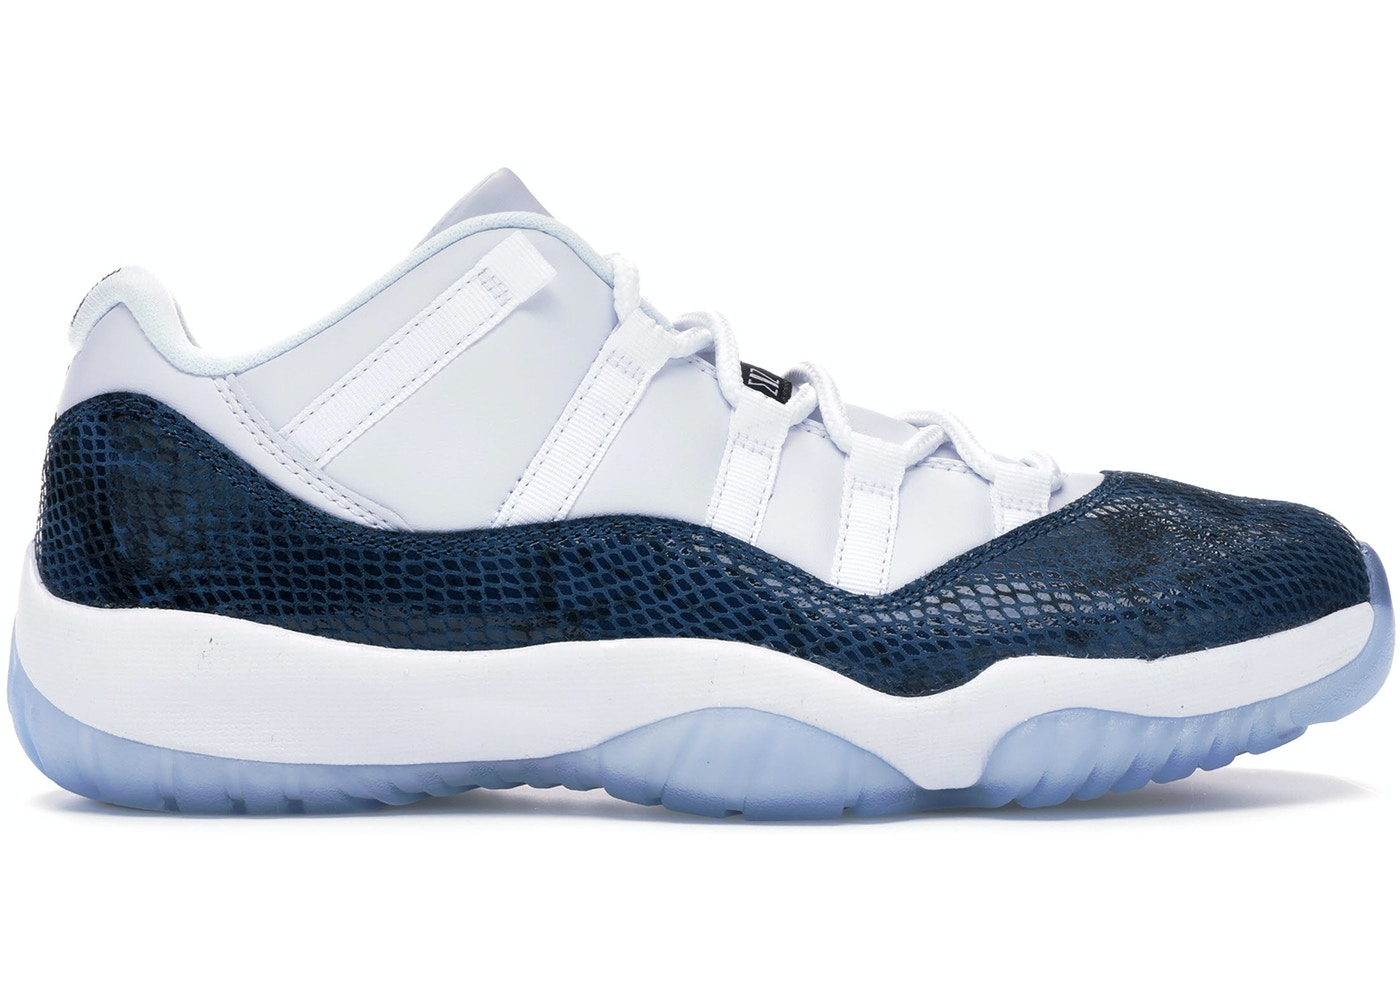 7f8061a13d52 Sell. or Ask. Size  16. View All Bids. Jordan 11 Retro Low ...